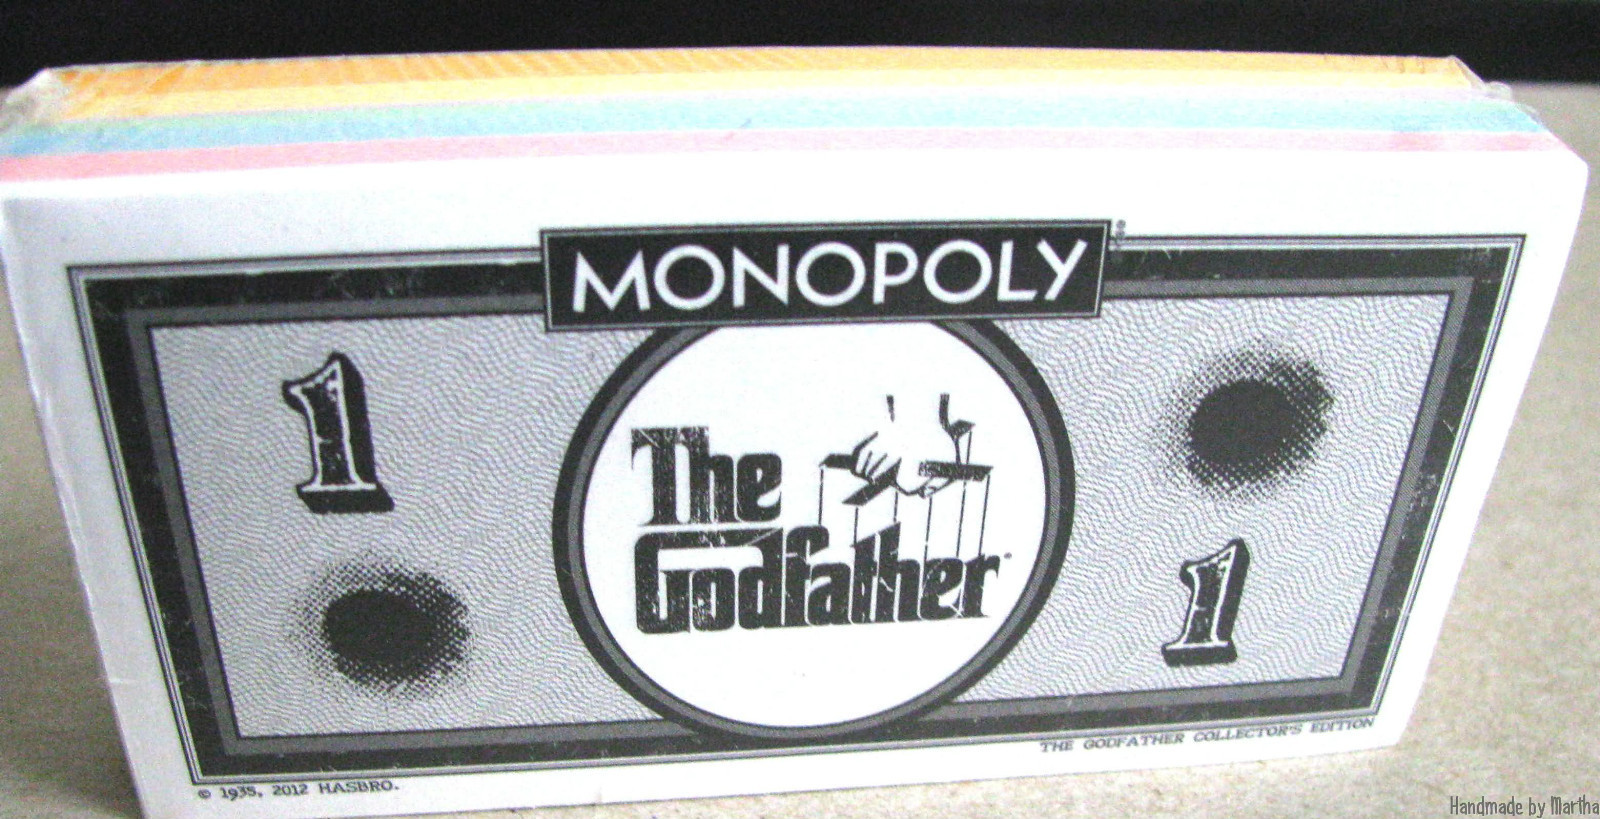 Billets du Monopoly The Godfather